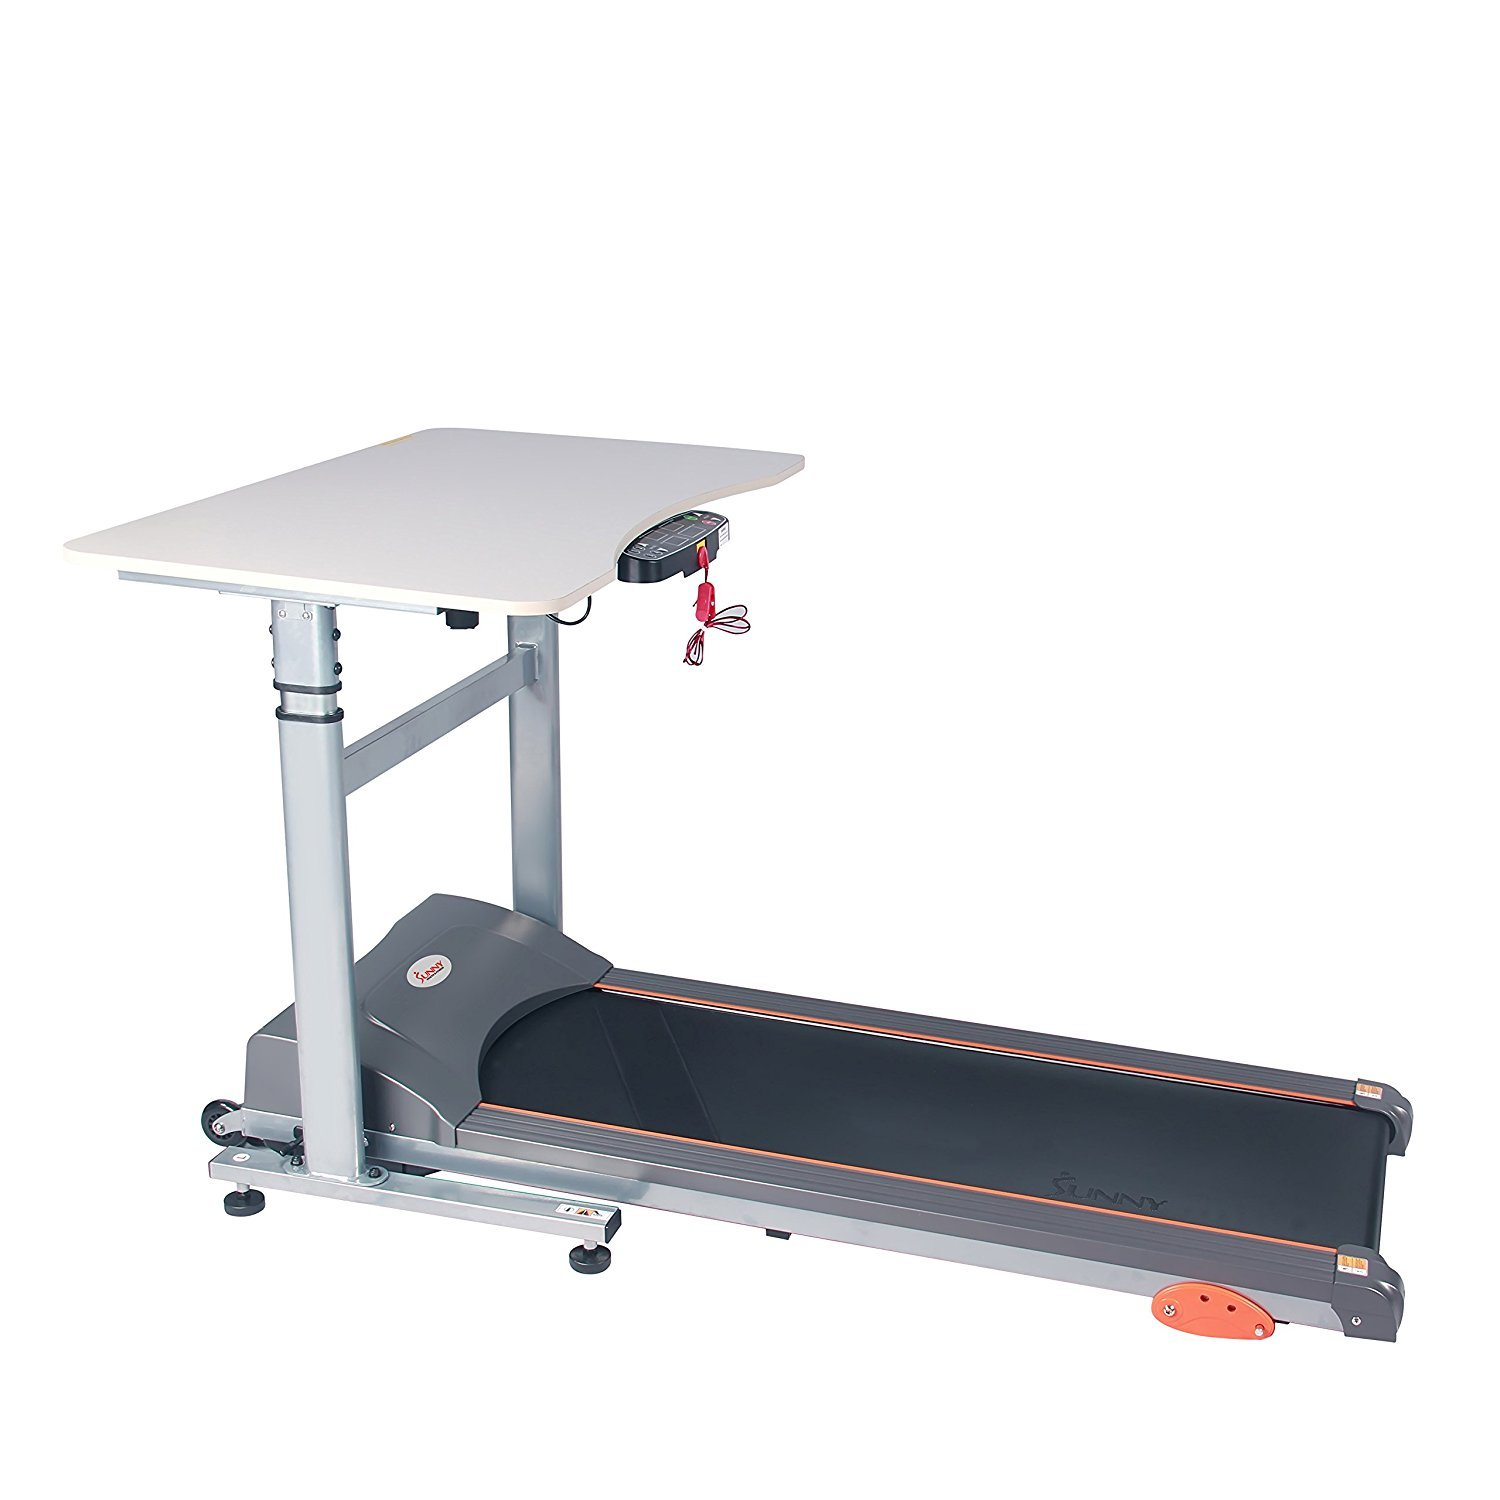 Sunny Health & Fitness Treadmill Desk Workstation with Power Adjustable Table Height, SF-TD7704